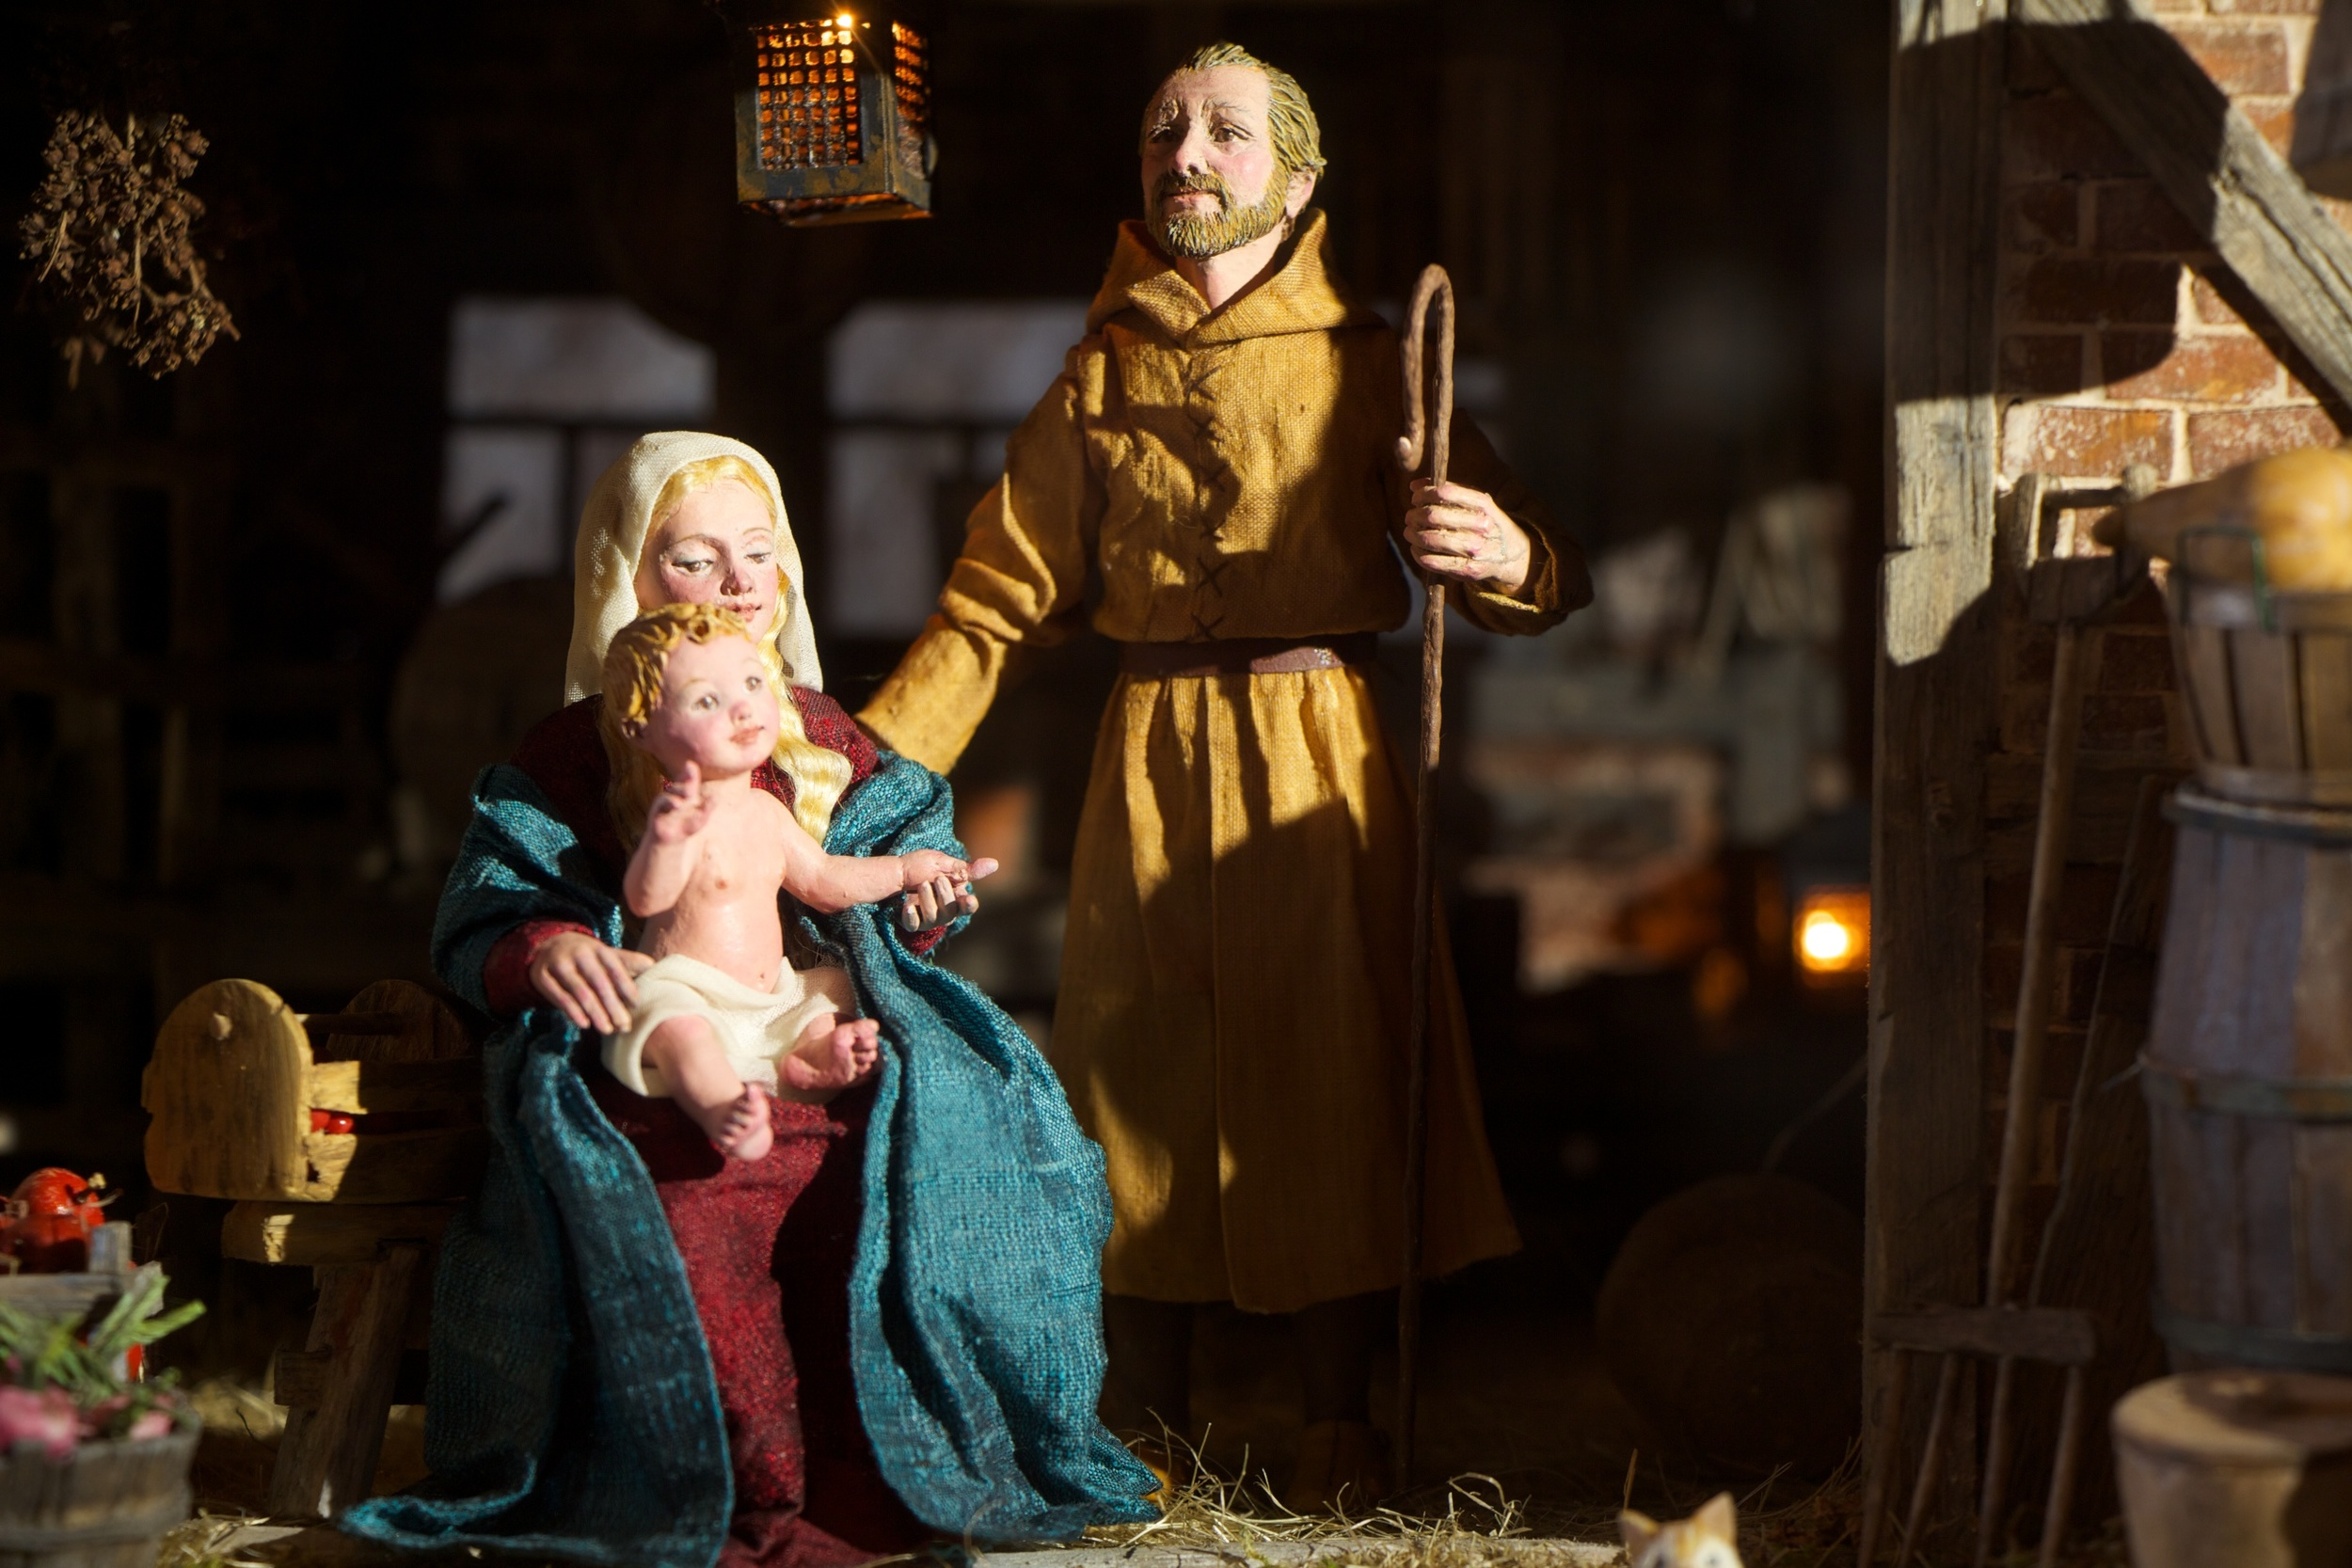 Figure 6: Karen Loccisano and R. Michael Palan, a husband-and-wife team of professional artists from Westchester County, New York, have been working on this 16th-century Flemish Nativity over the past year. Visitors to Glencairn's  World Nativities  exhibition in 2013 may also remember their highly detailed American Presepio Nativity scene.